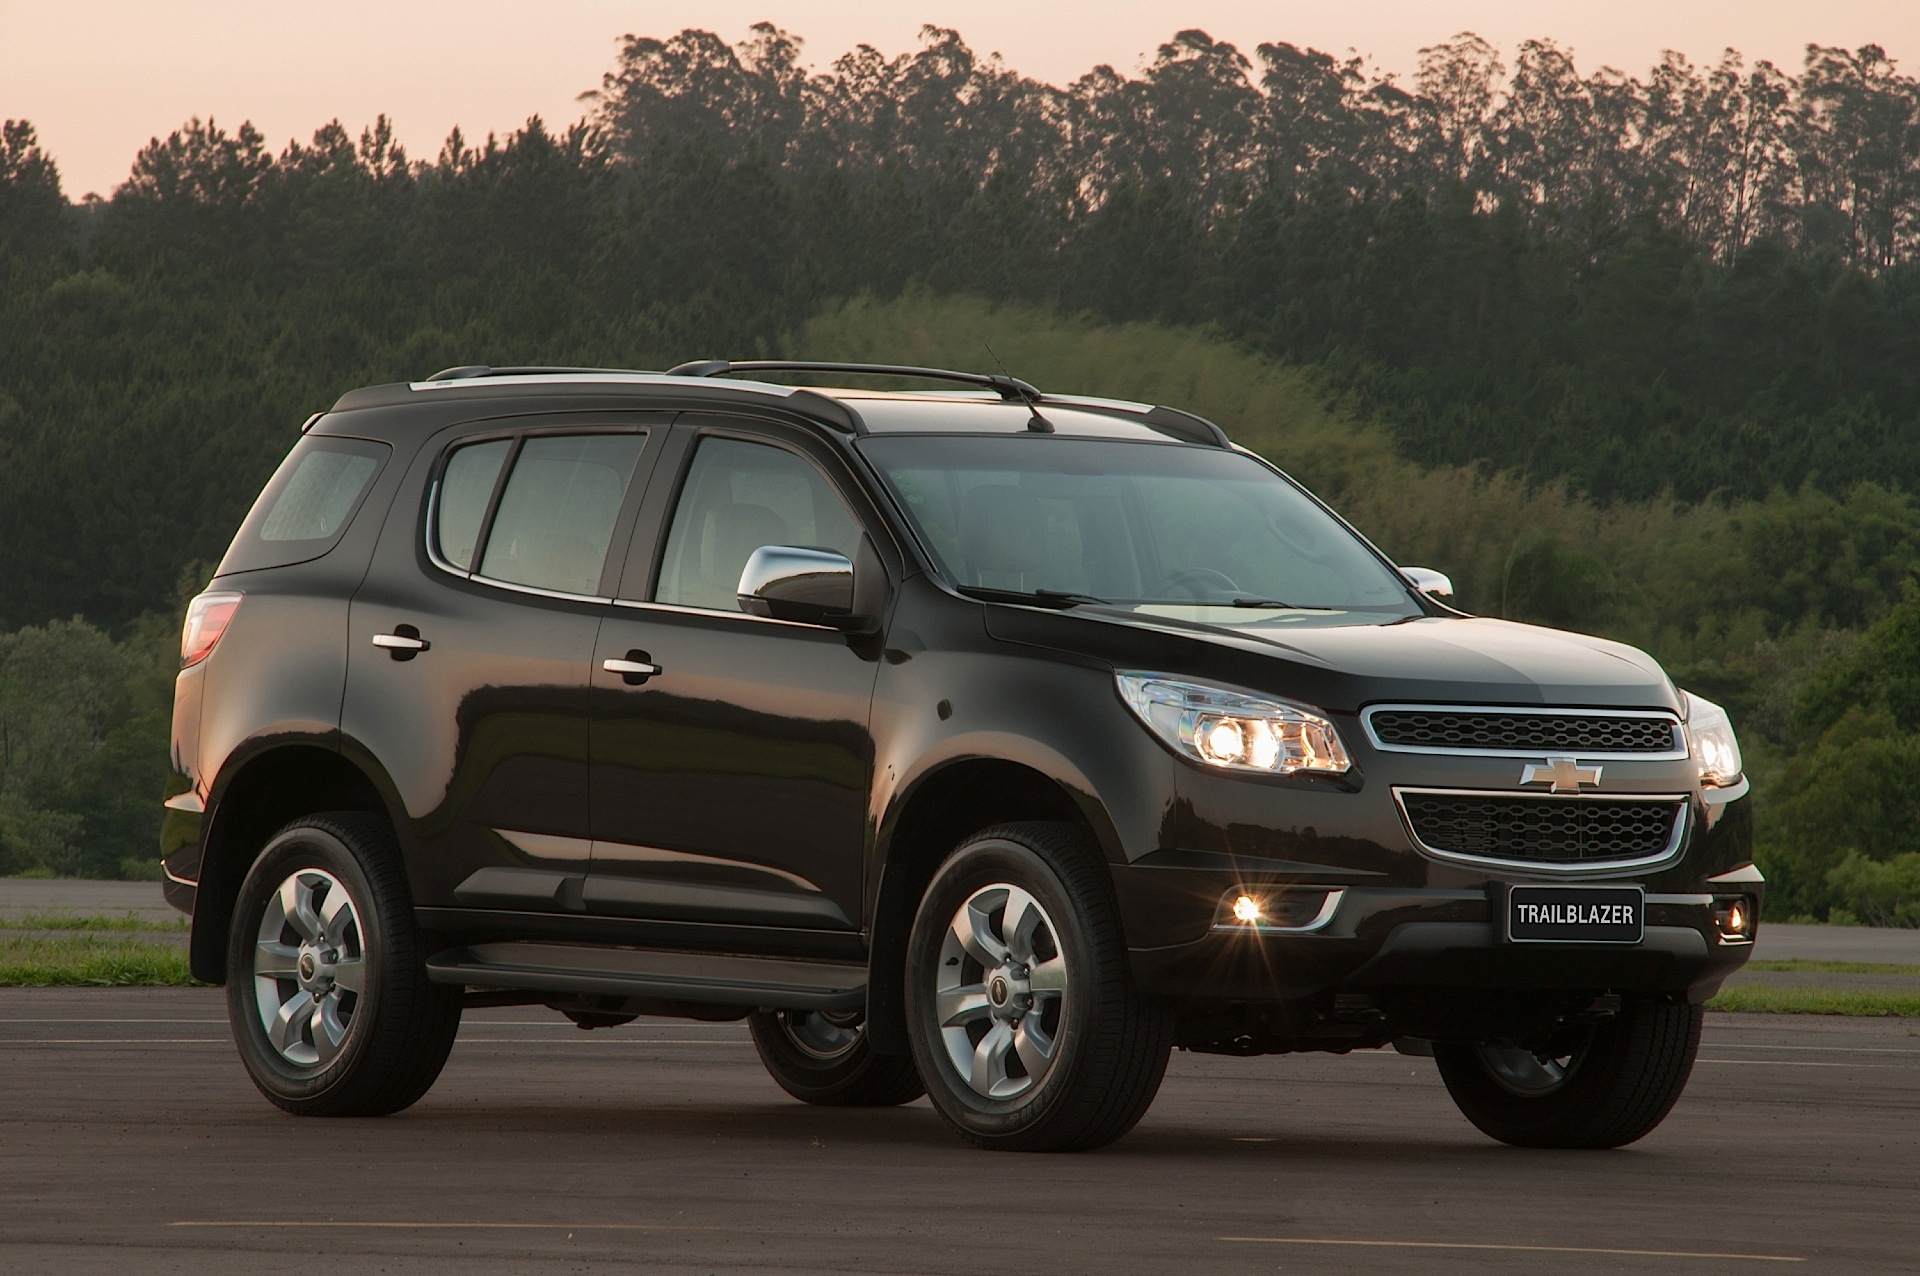 2016 Duramax Specs >> CHEVROLET Trailblazer specs & photos - 2012, 2013, 2014, 2015, 2016, 2017, 2018, 2019, 2020 ...